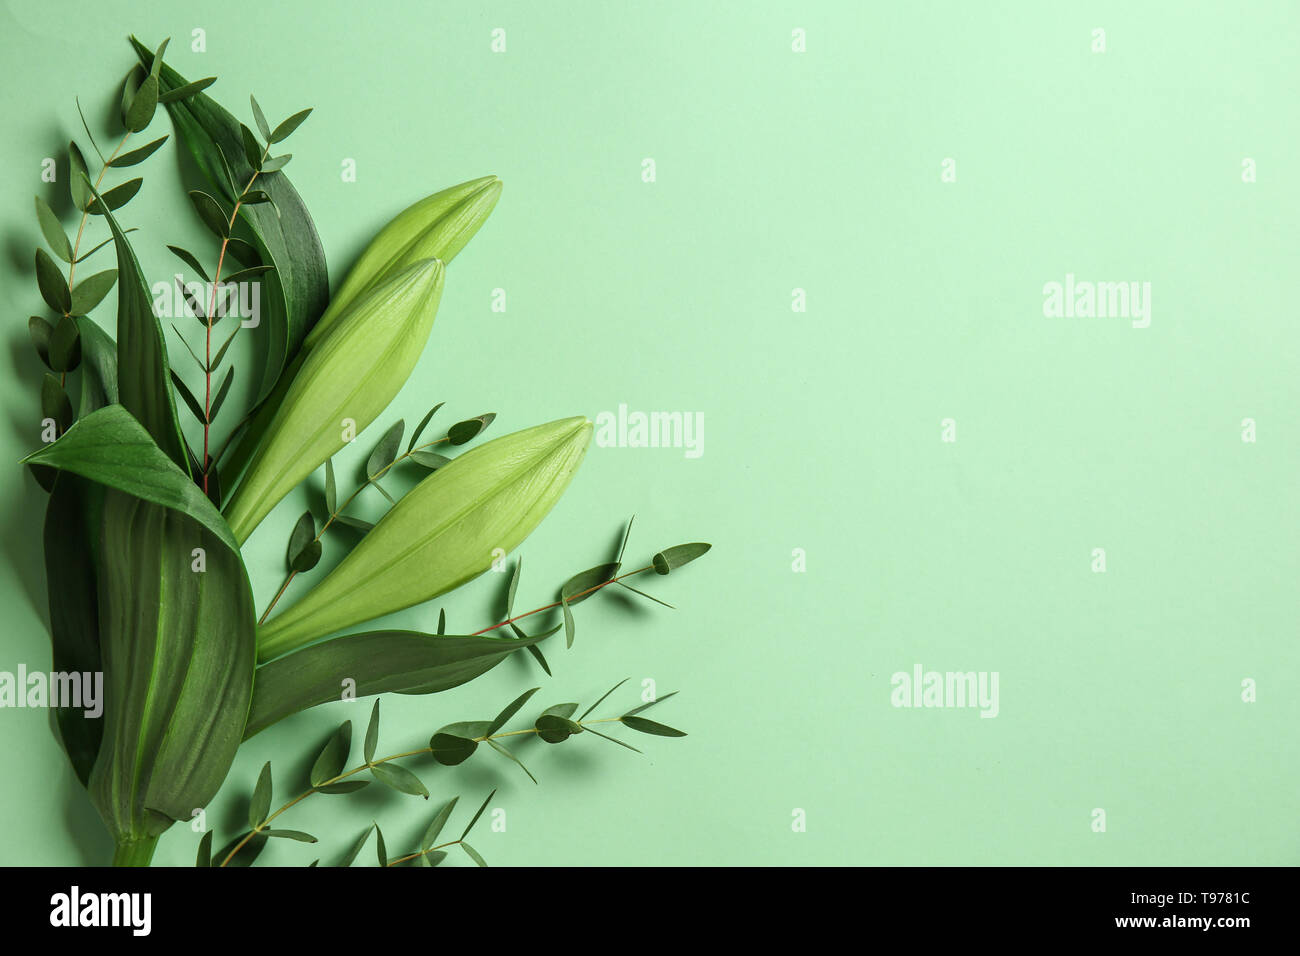 Green eucalyptus branches with flowers on color background - Stock Image